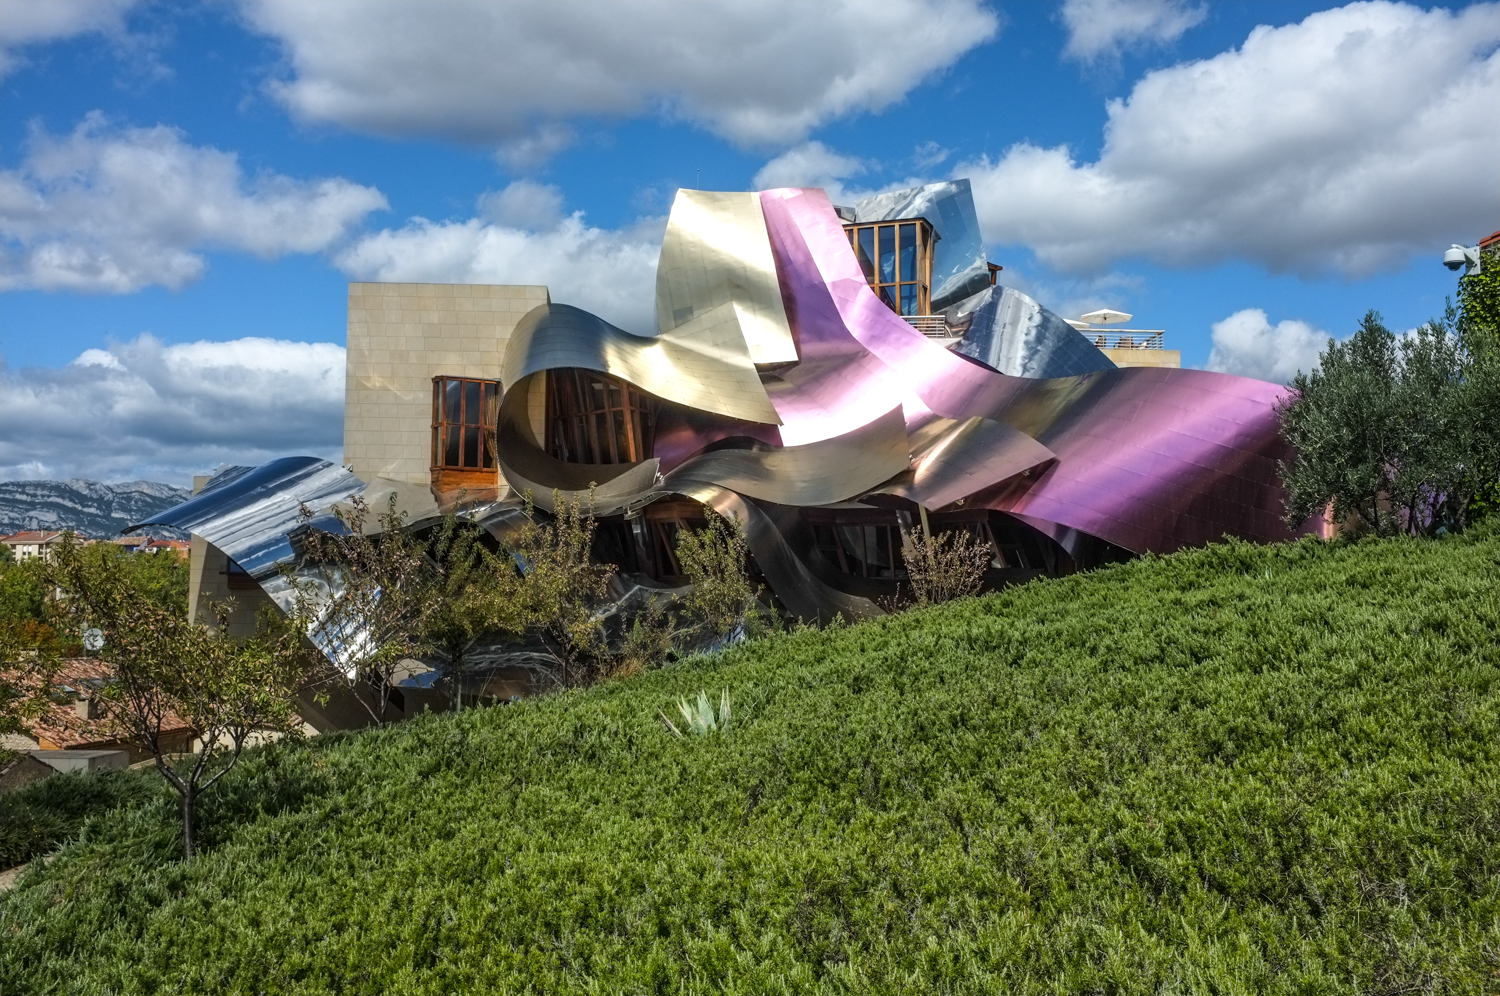 Frank gehry in rioja hotel marques de riscal for Hotel marques de riscal